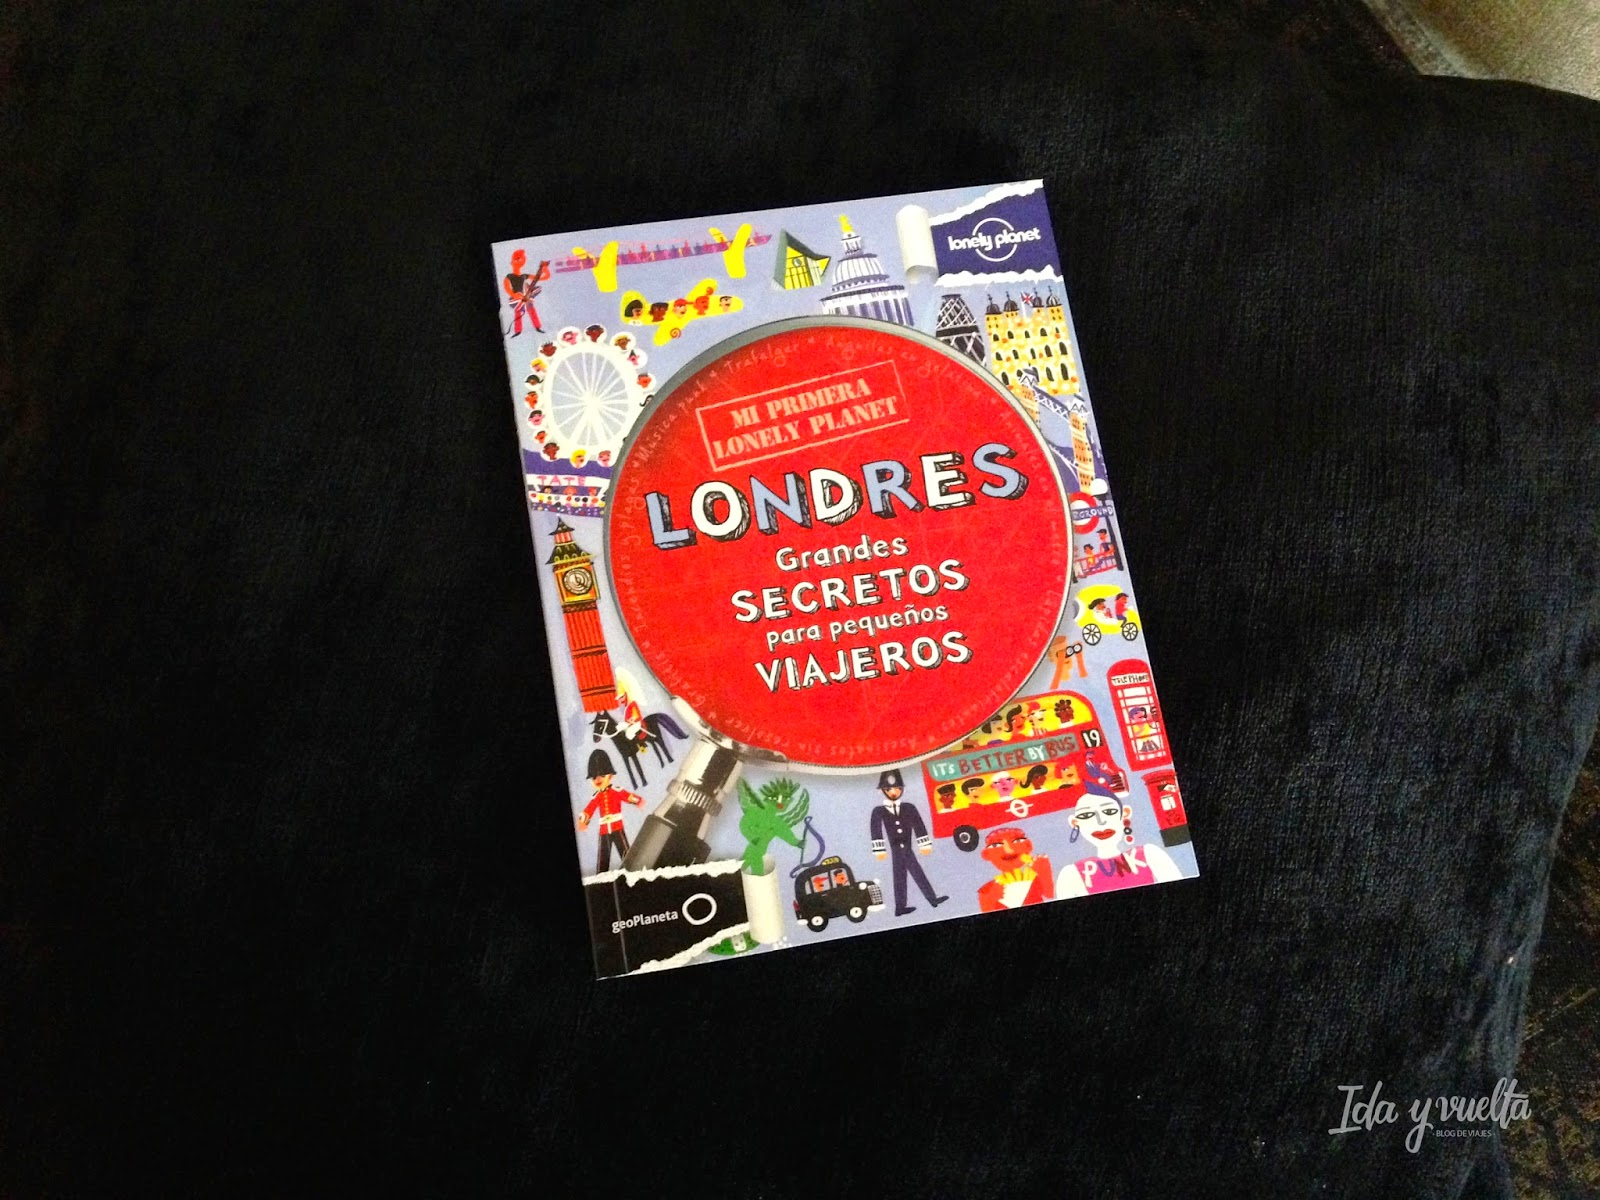 Mi primera Lonely Planet de Londres